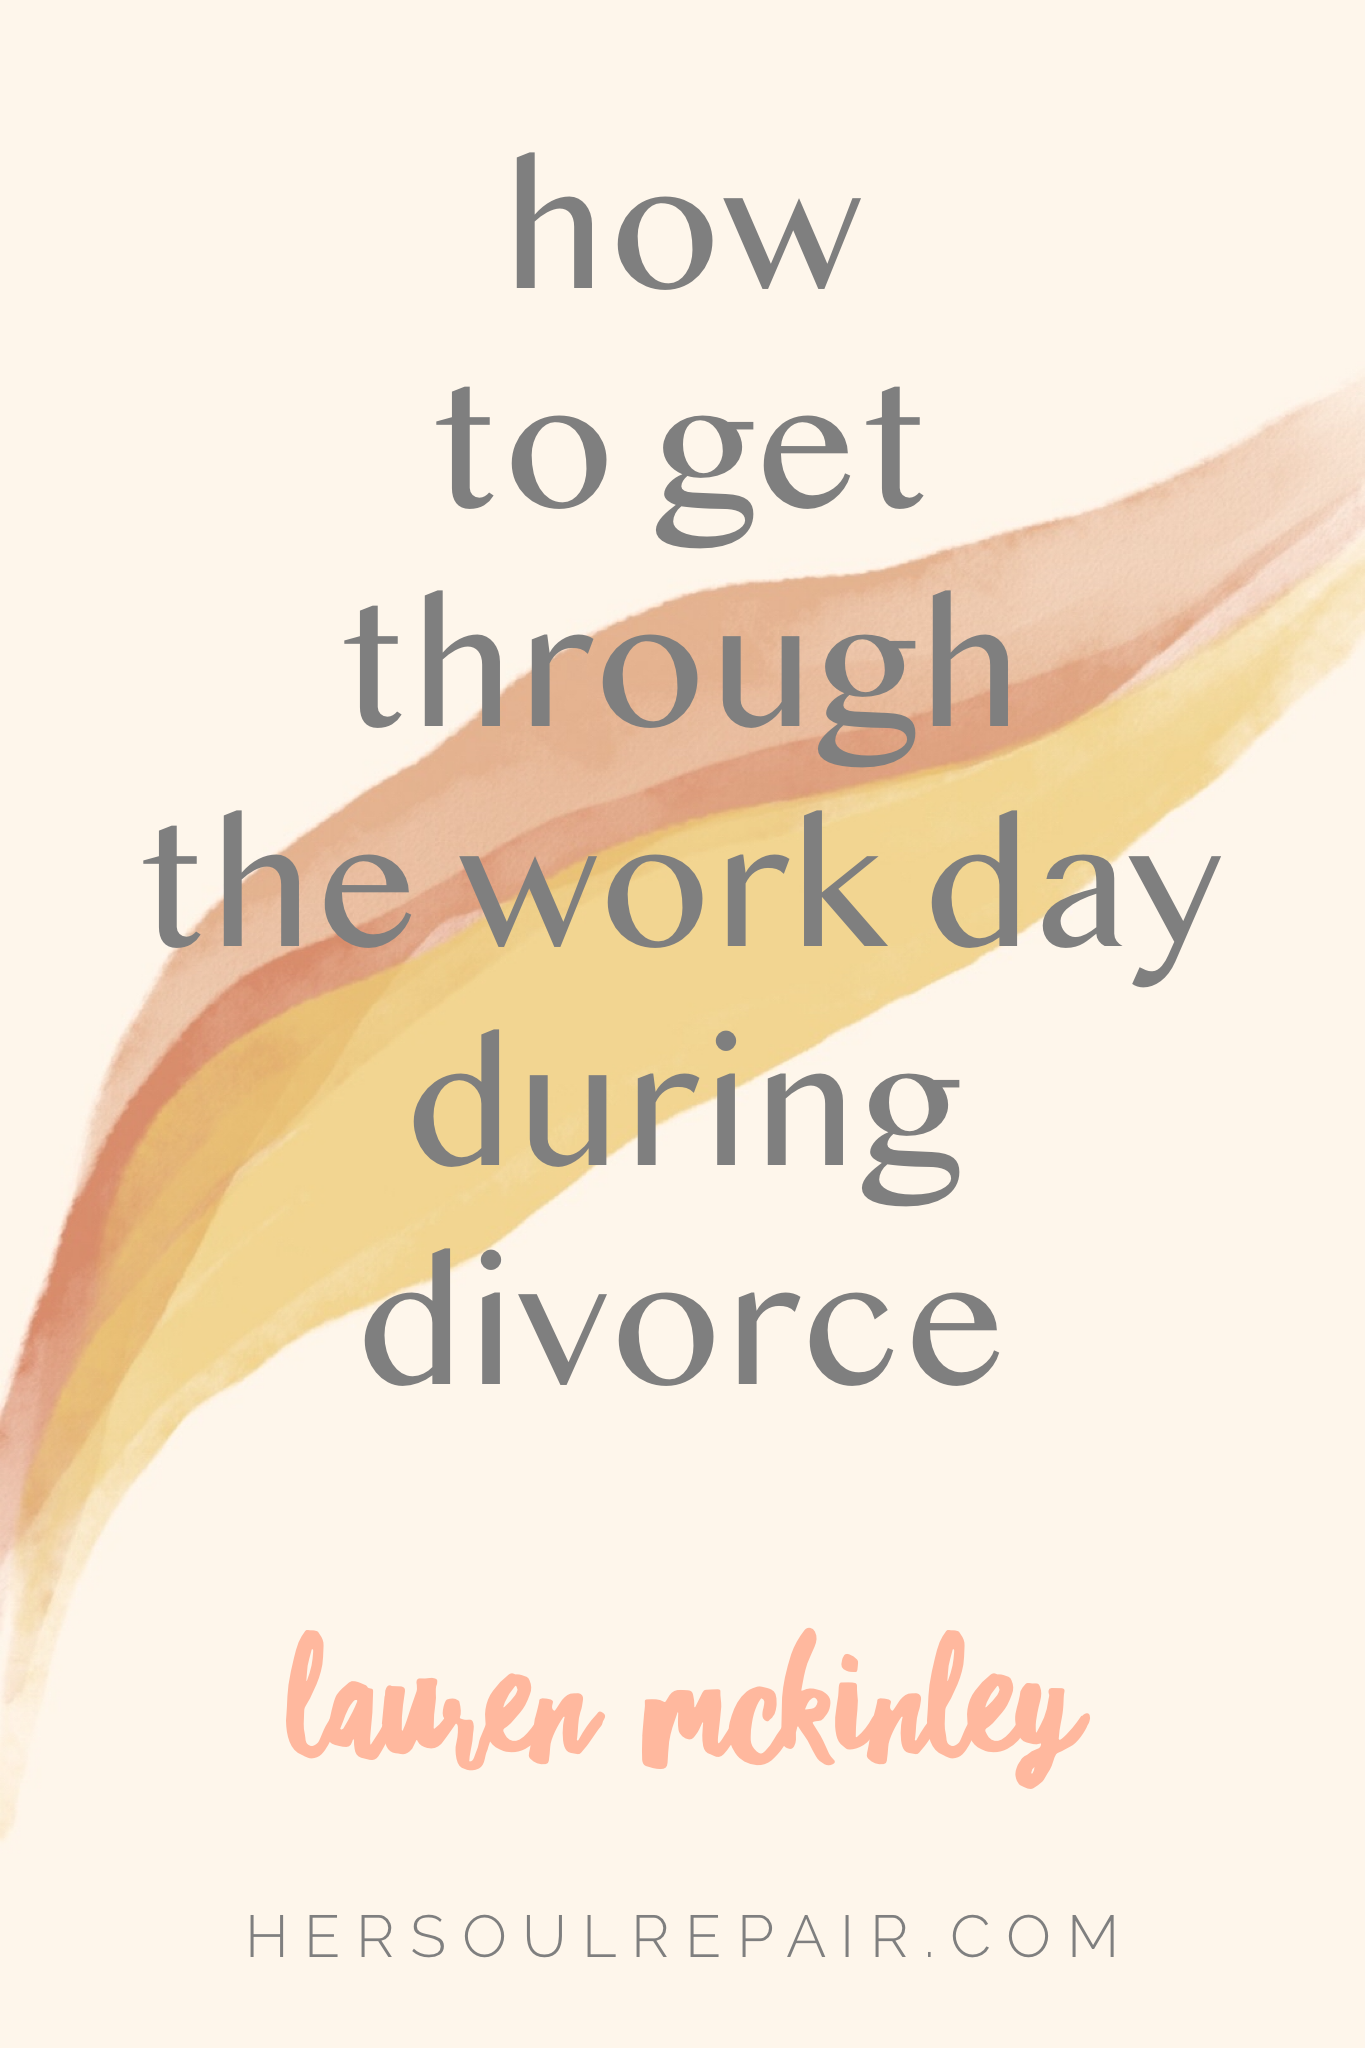 Getting through the work day during divorce can feel